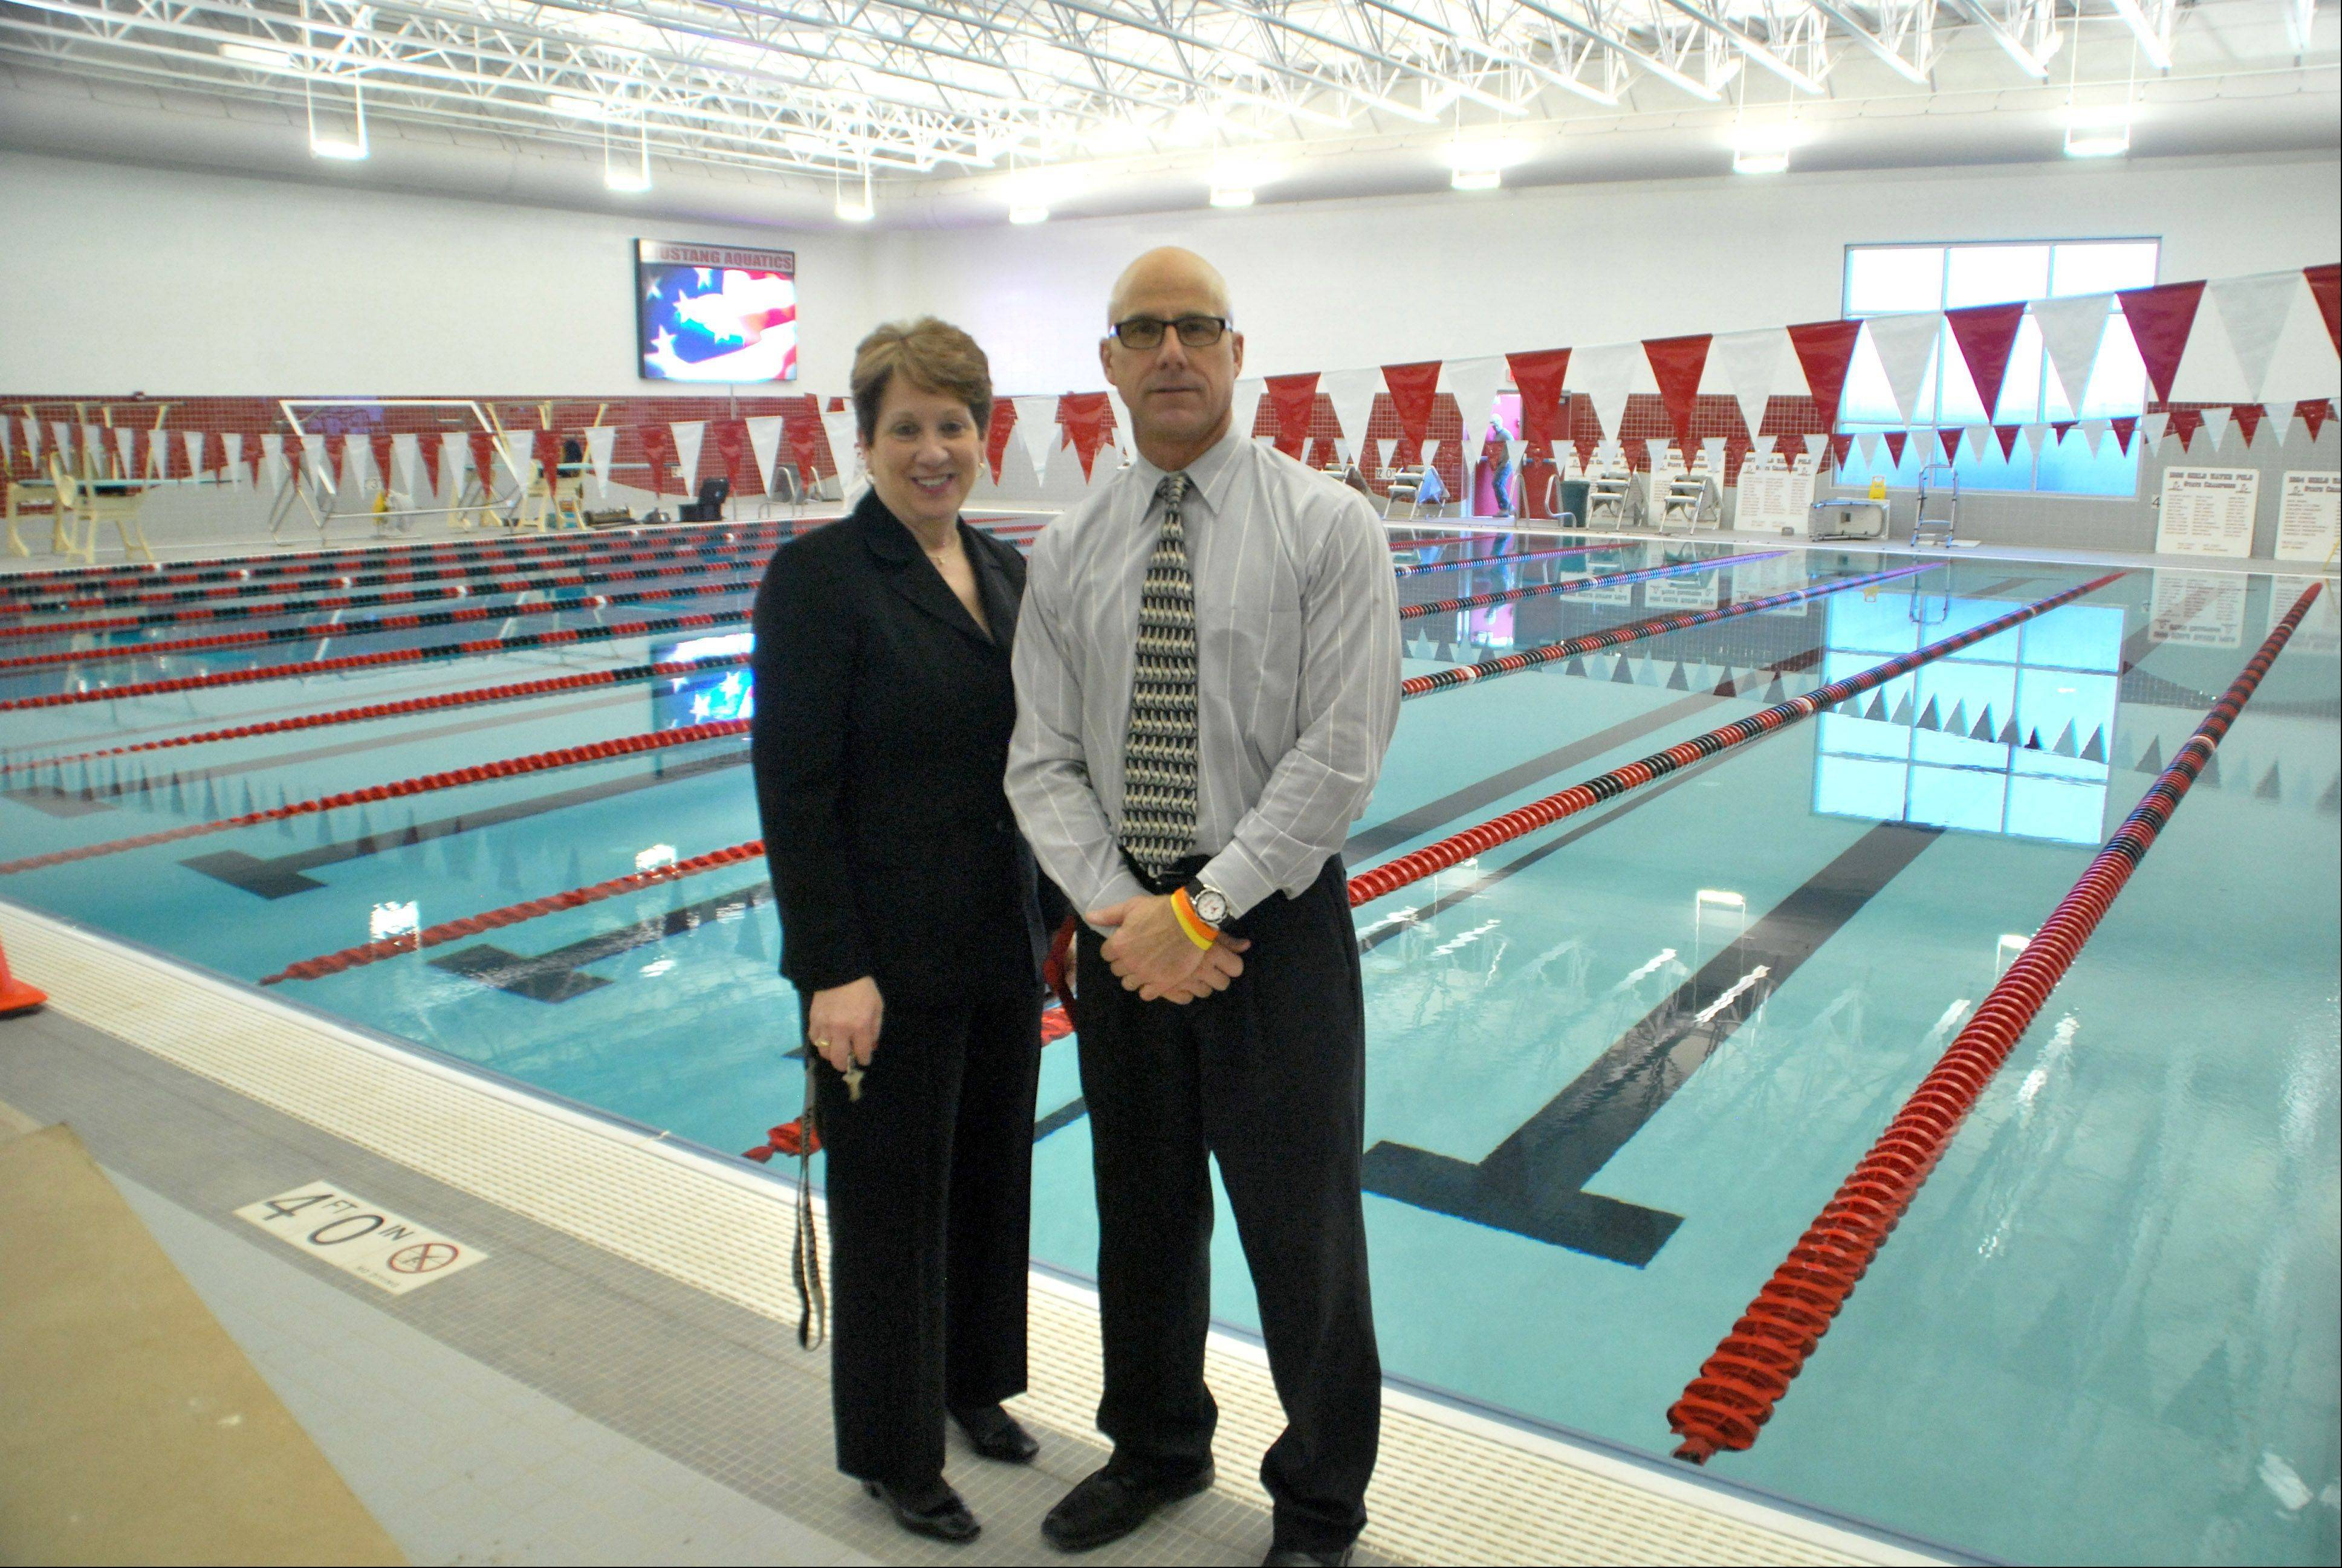 Mundelein High School District 120 Superintendent Jody Ware and Athletic Director Perry Wilhelm at the renovated Mundelein High School pool earlier this year.